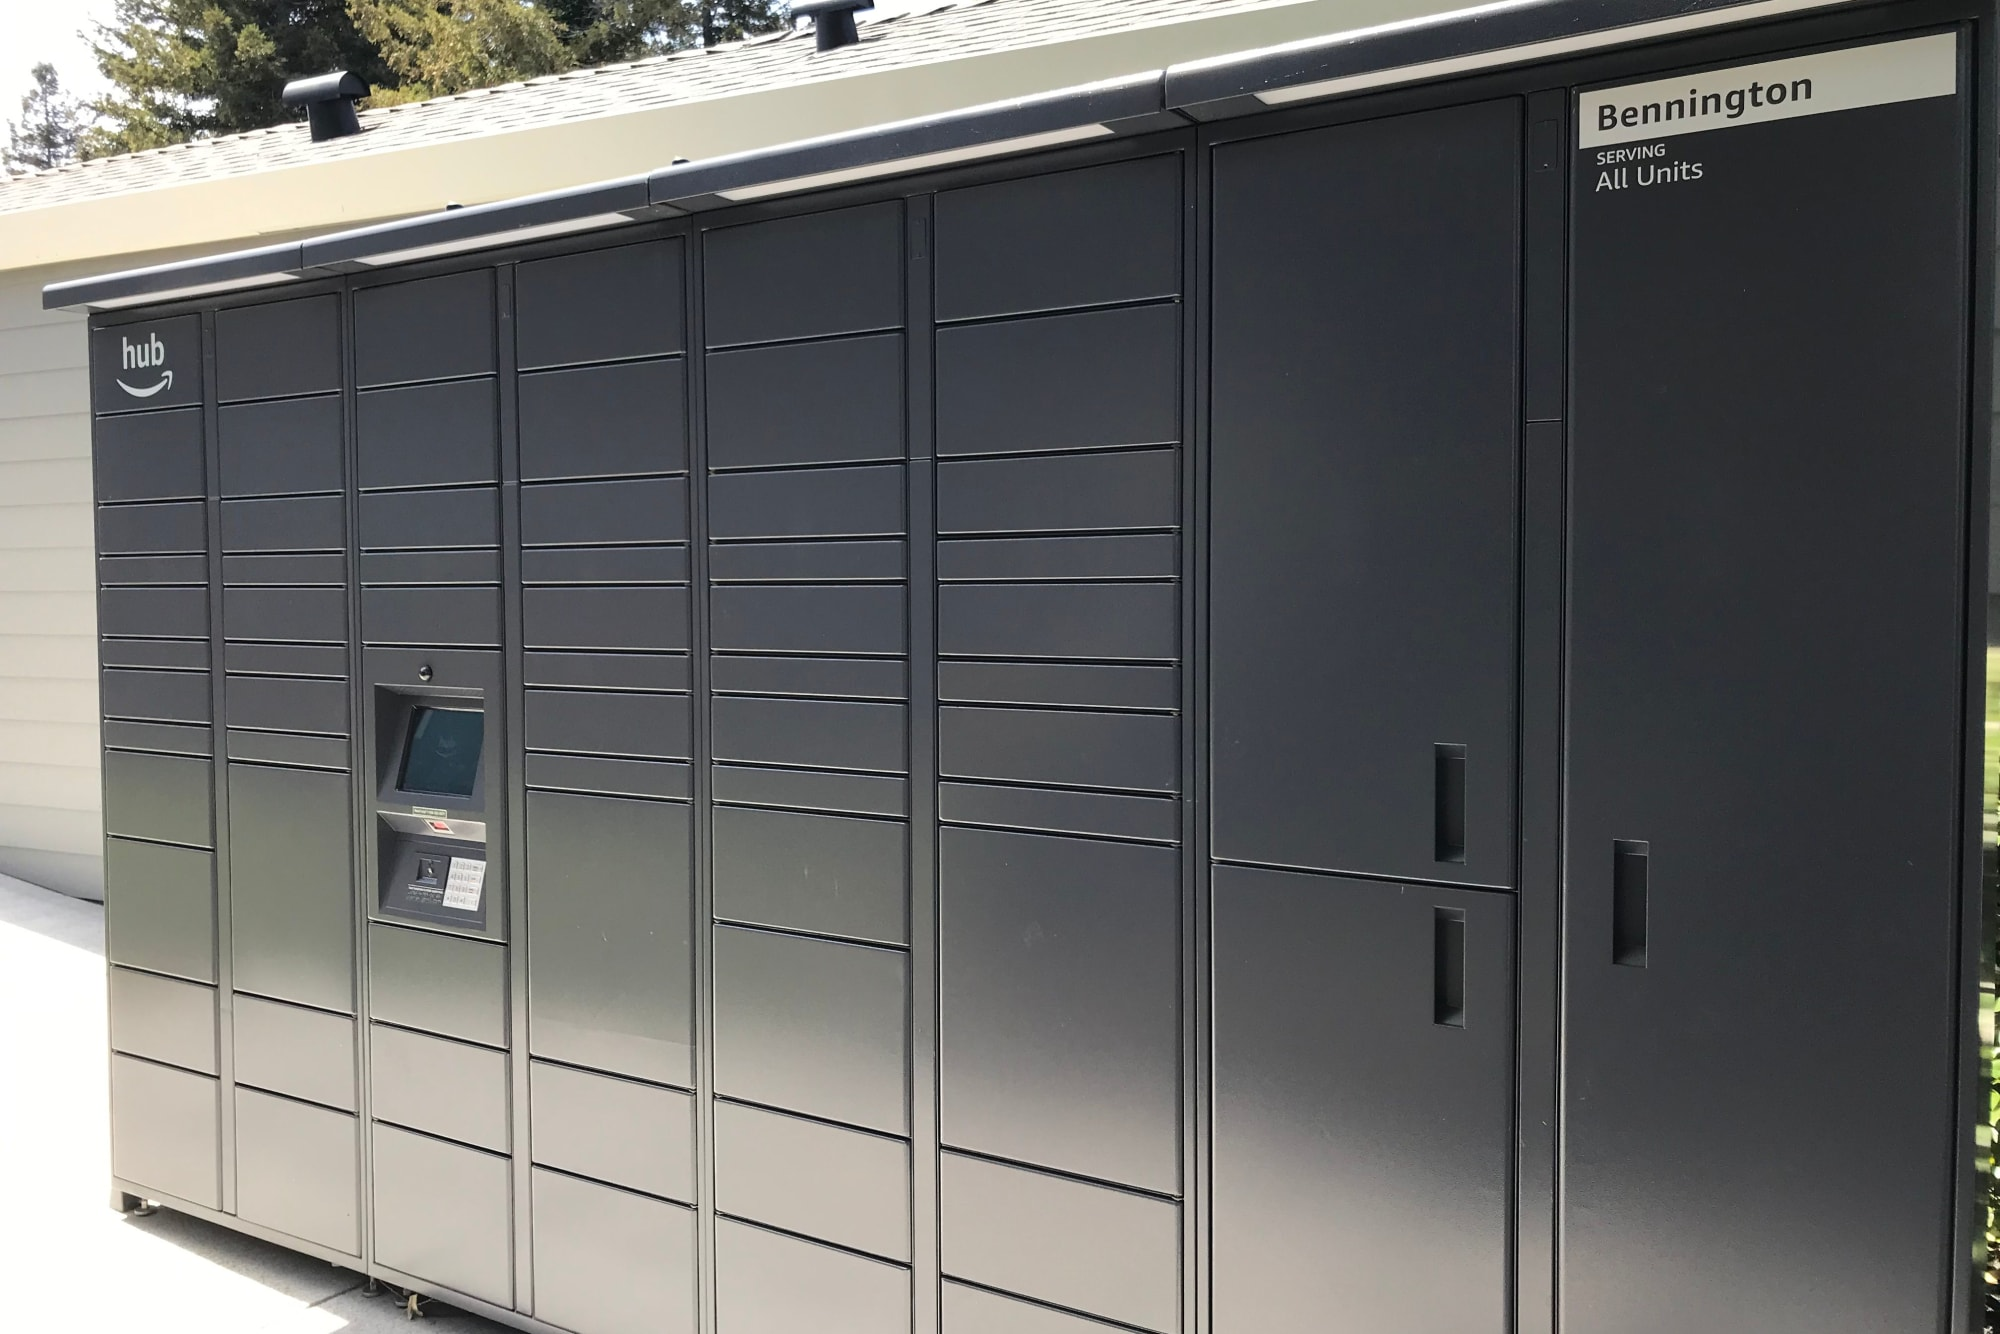 24-hour package lockers with Amazon HUB at Bennington Apartments in Fairfield, California